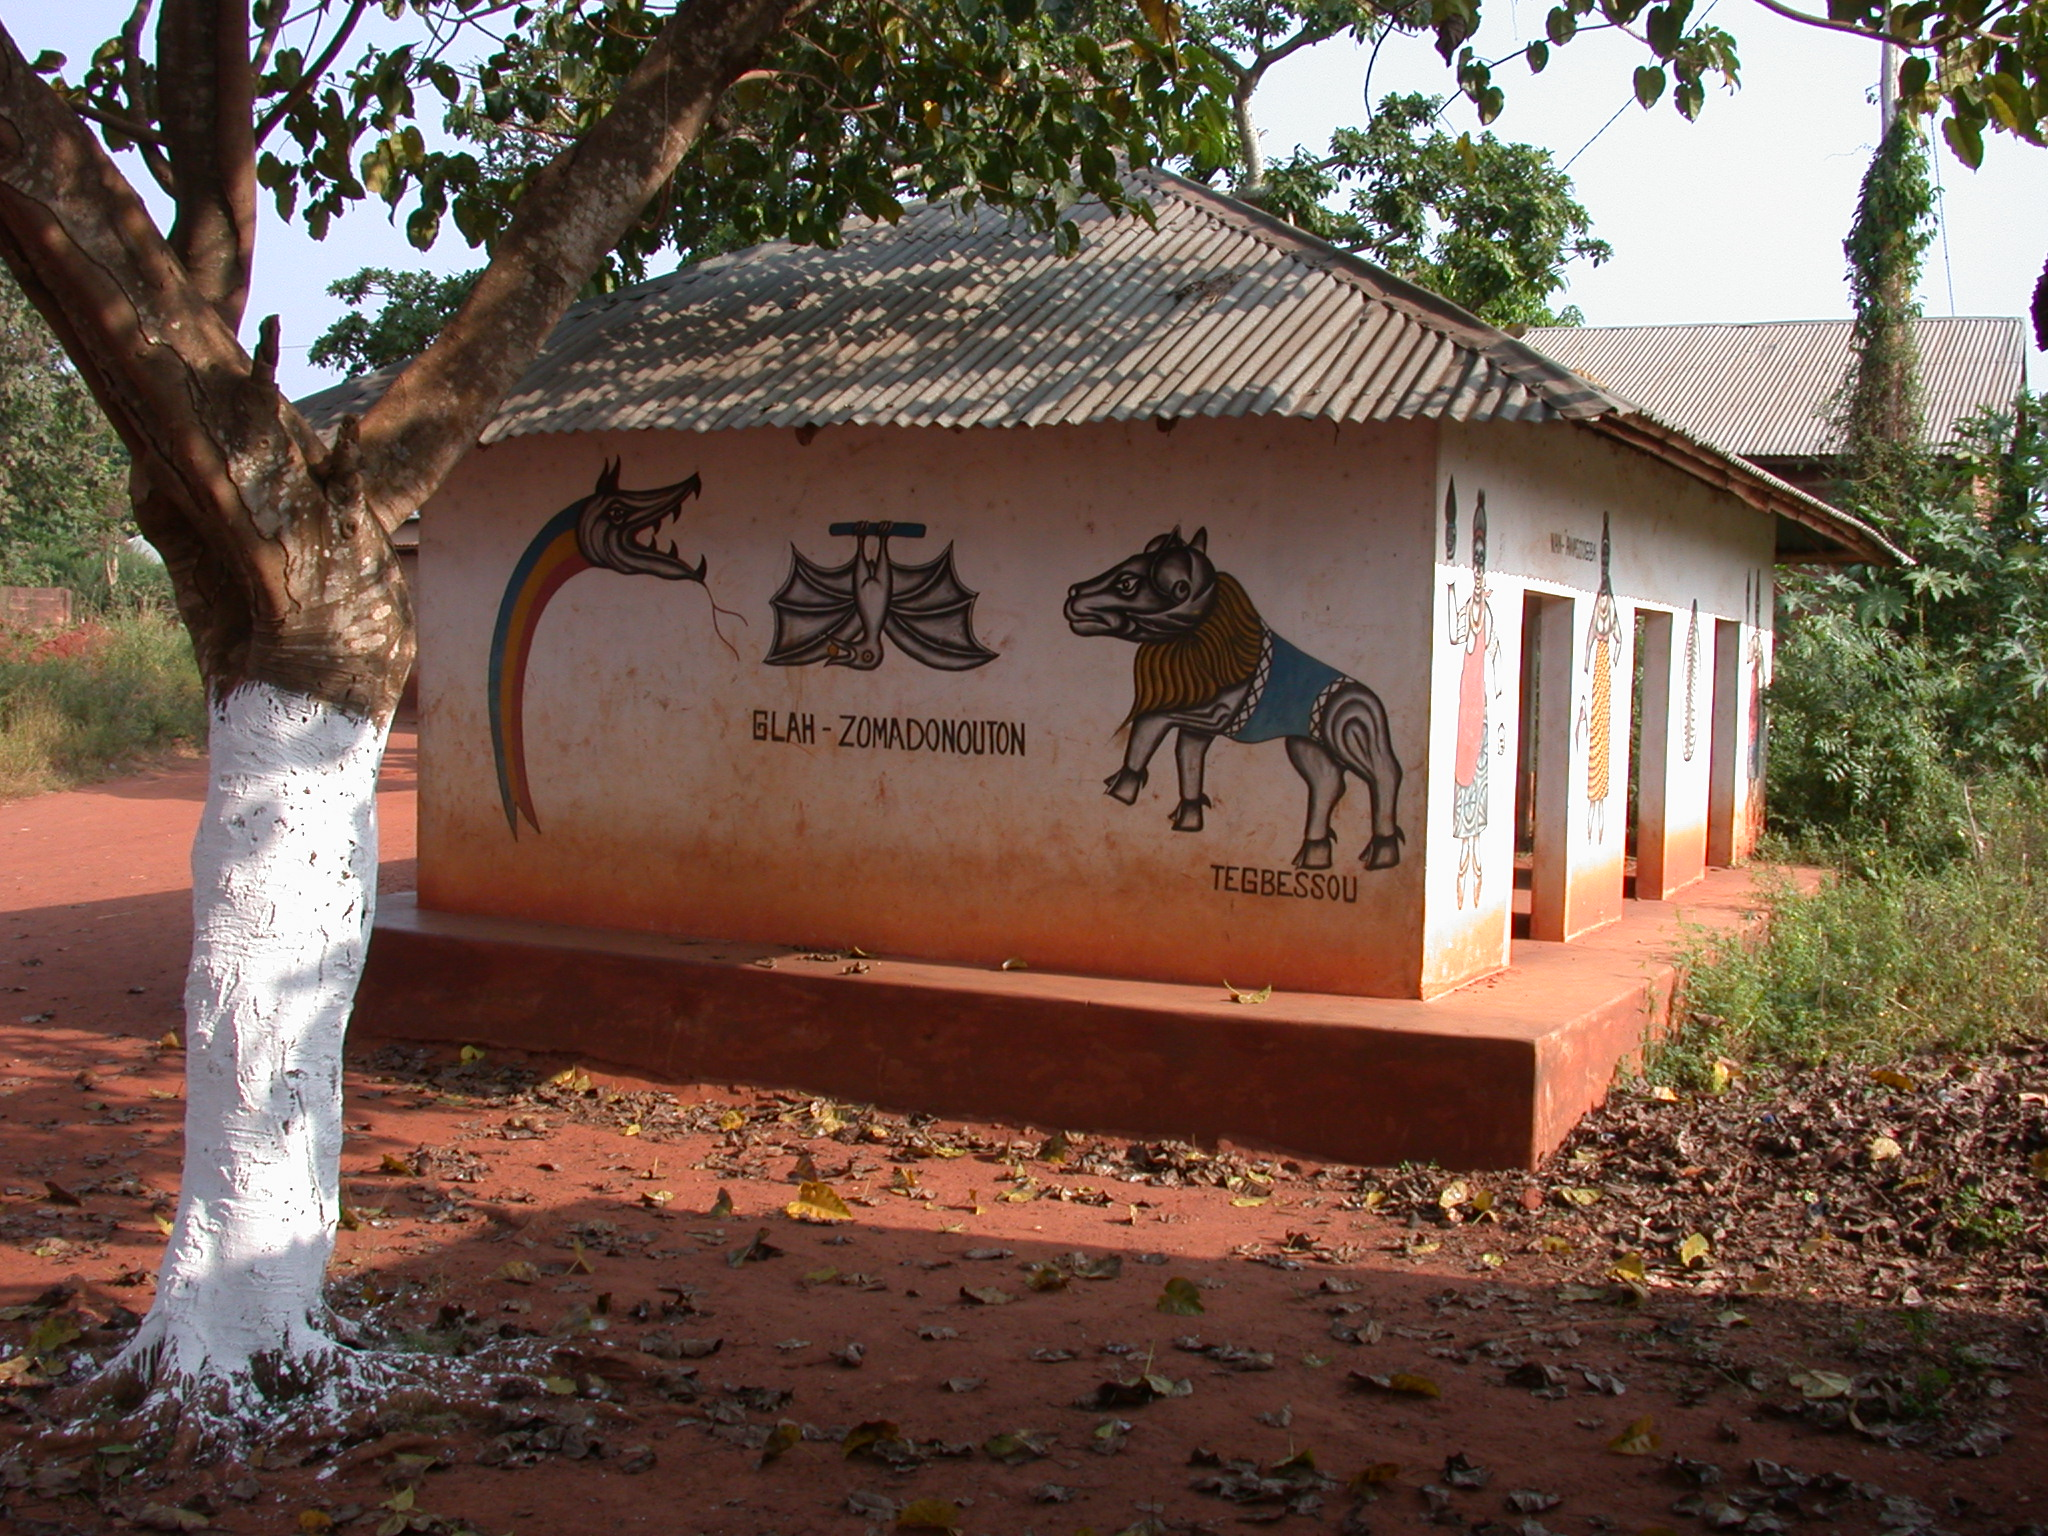 Left Side of Zomadonou Akaba Temple With Symbols of  Glah-Zomadonouton and Tegbessou, Abomey, Benin